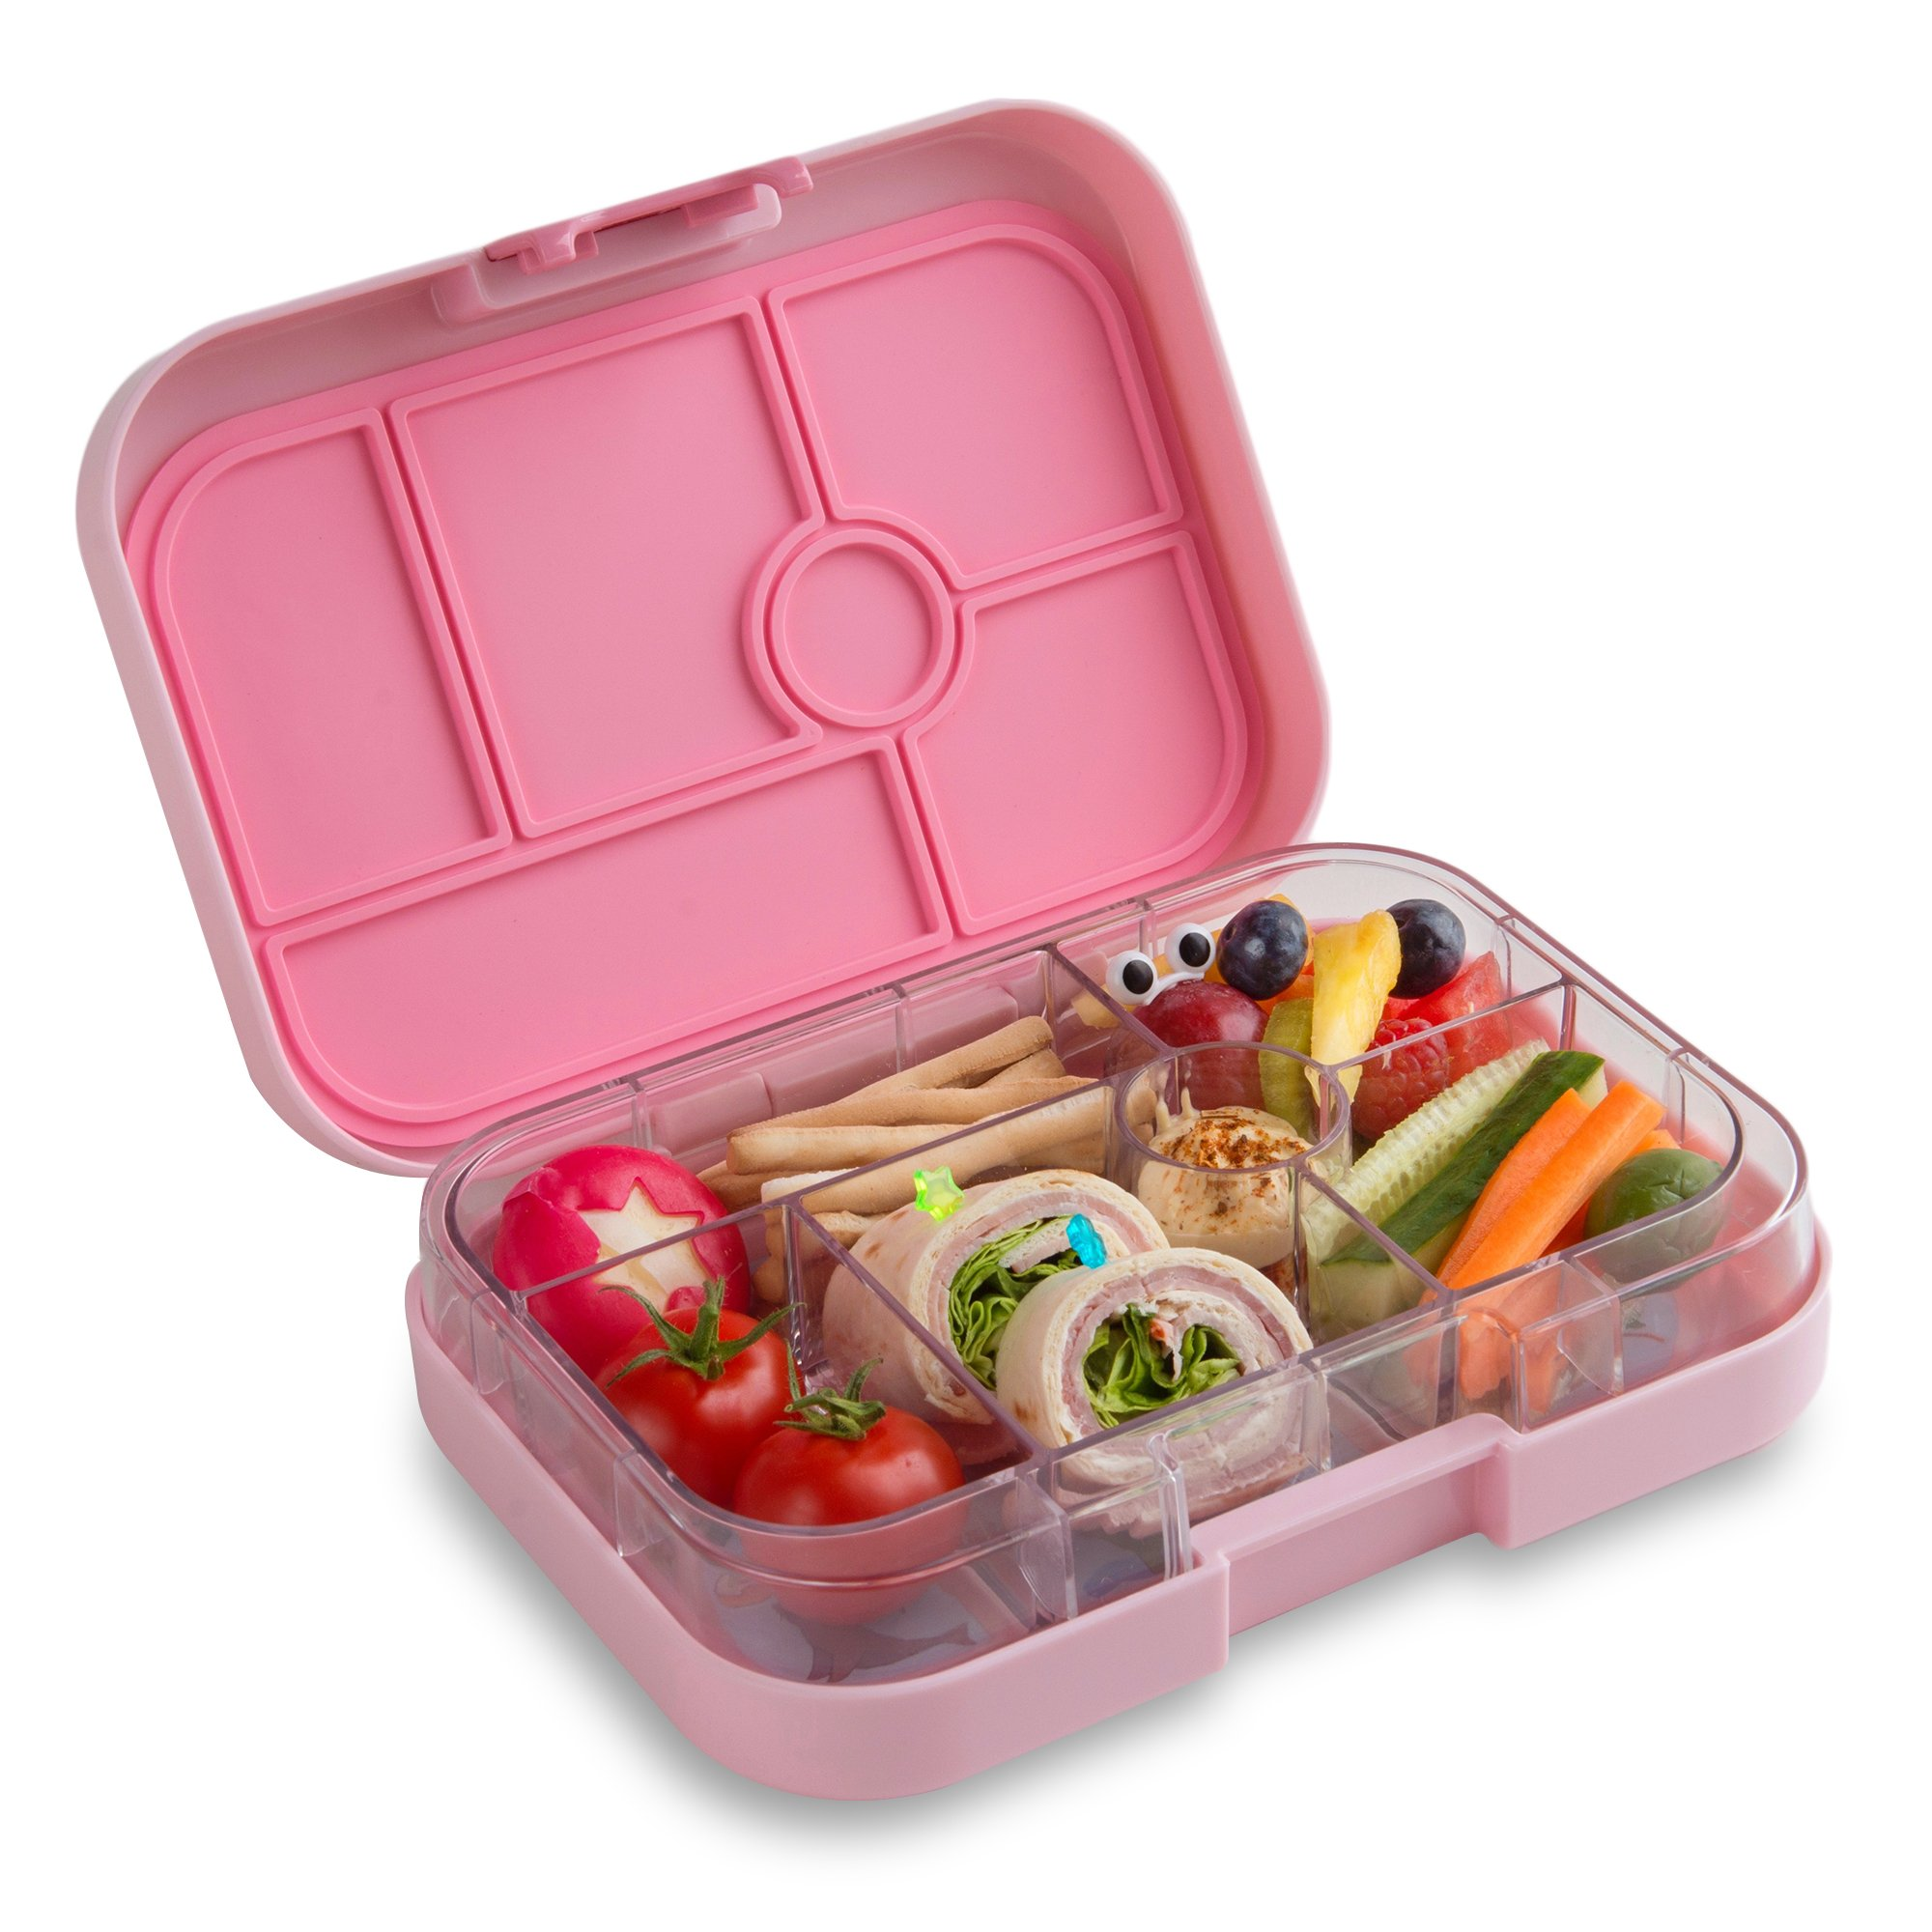 Yumbox Original Hollywood Pink Leakproof Bento Lunch Box